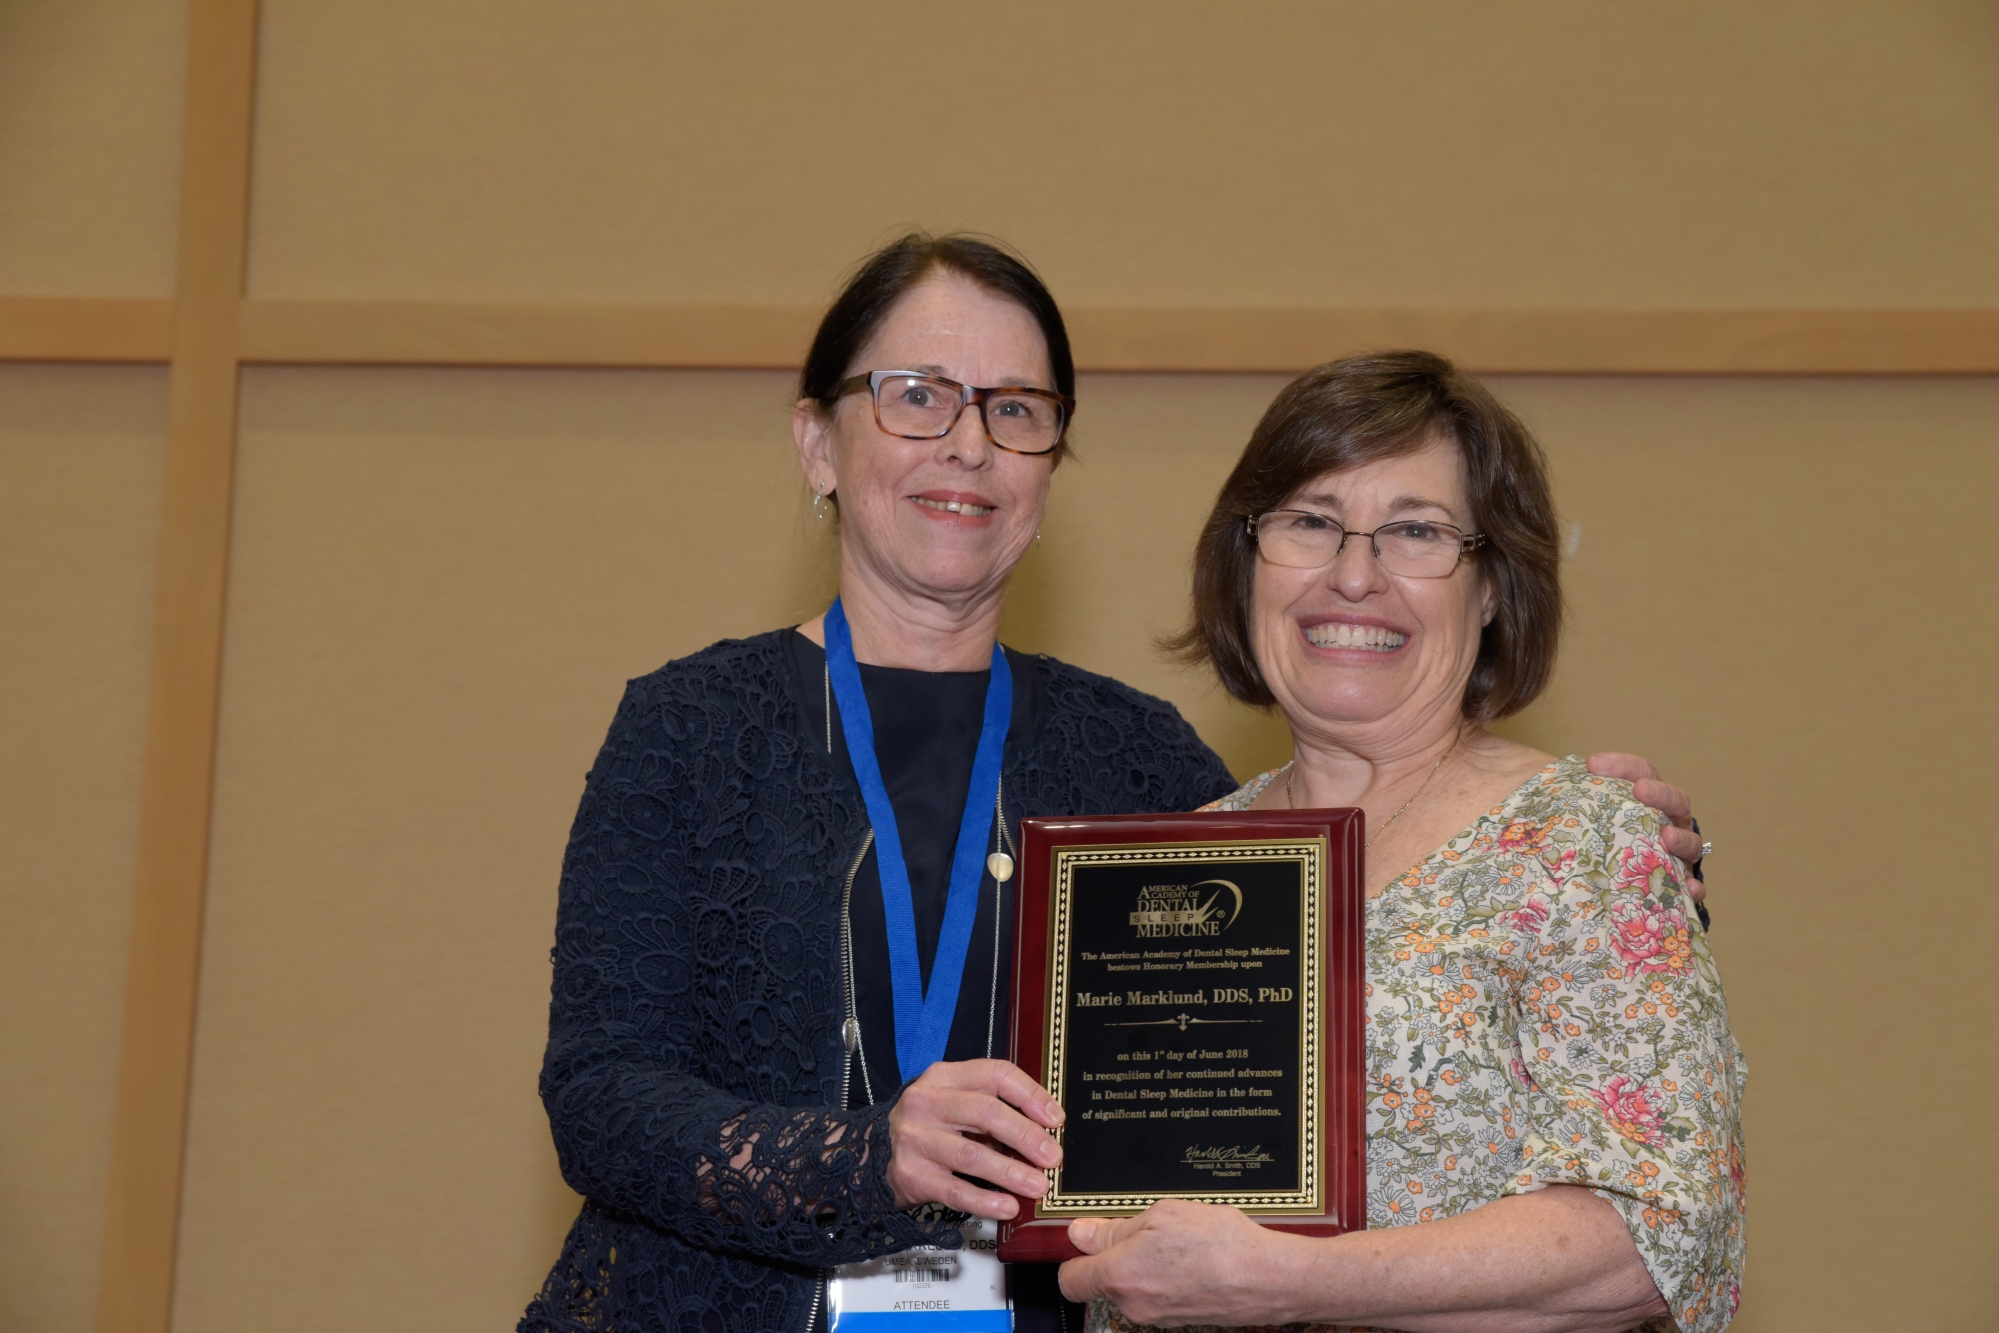 Participant winning abstracts at Annual Meeting